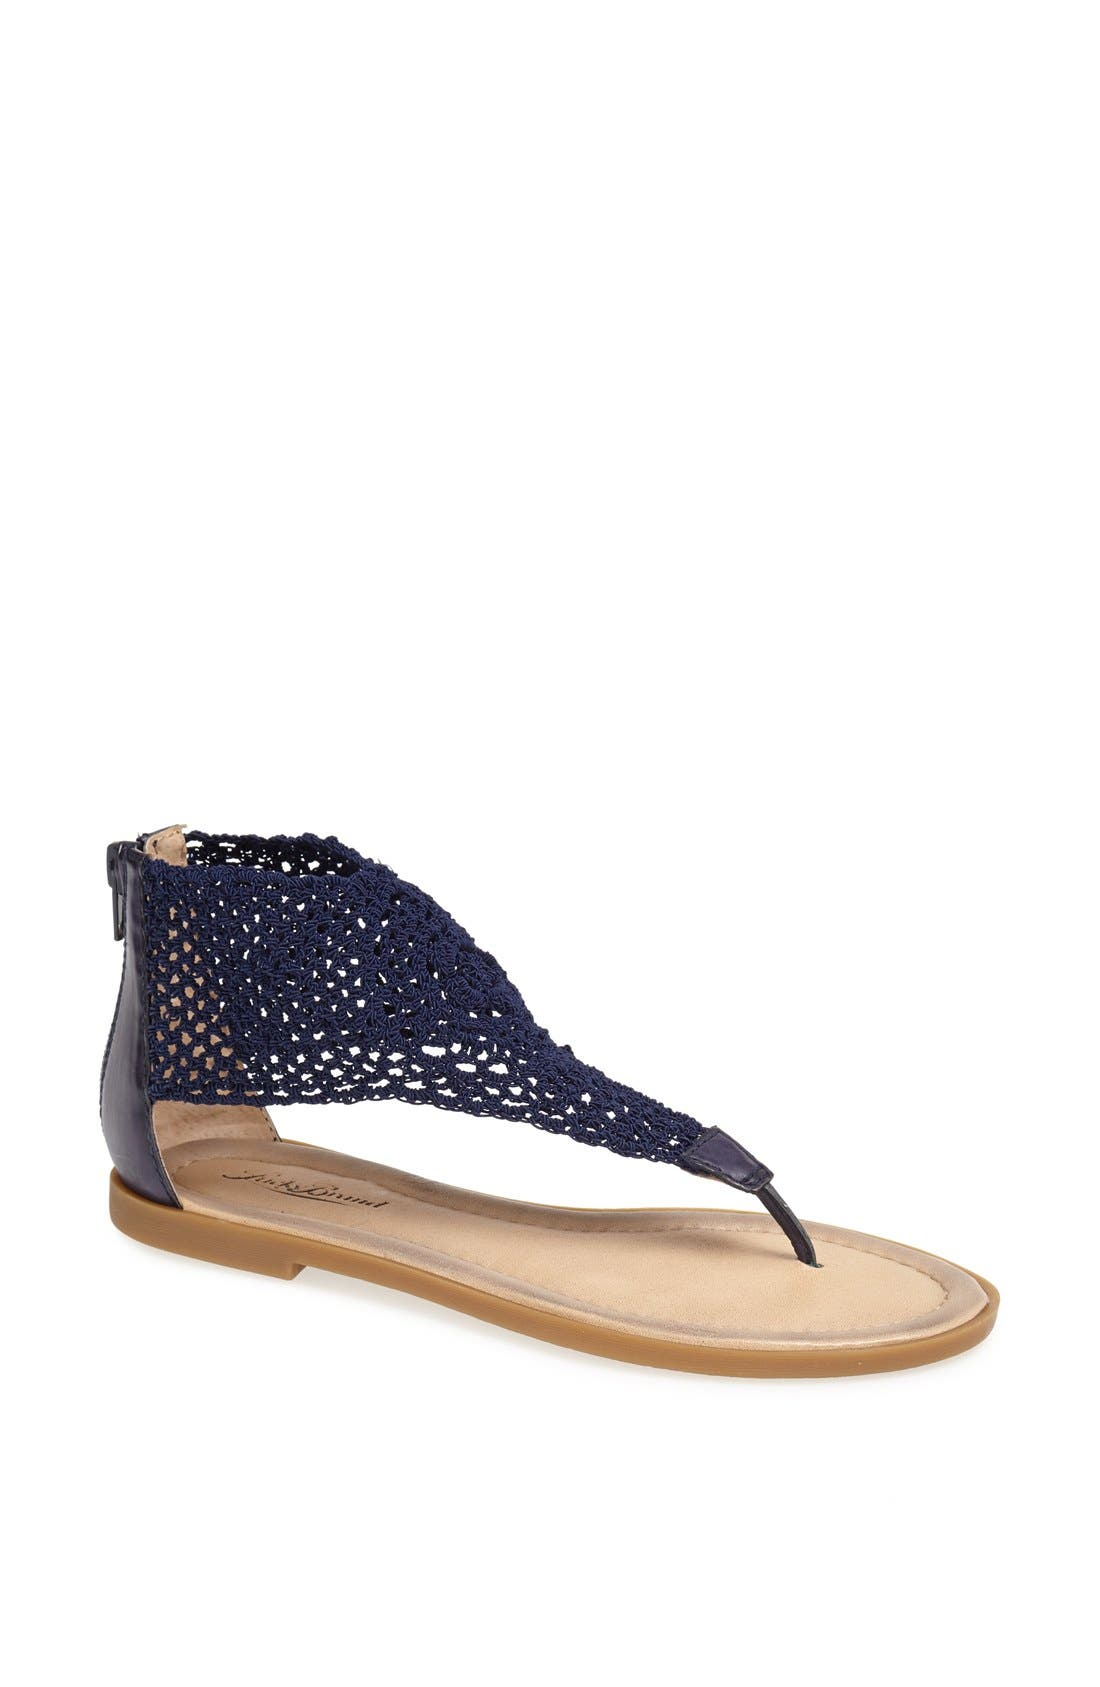 Alternate Image 1 Selected - Lucky Brand 'Cropley' Crochet Sandal